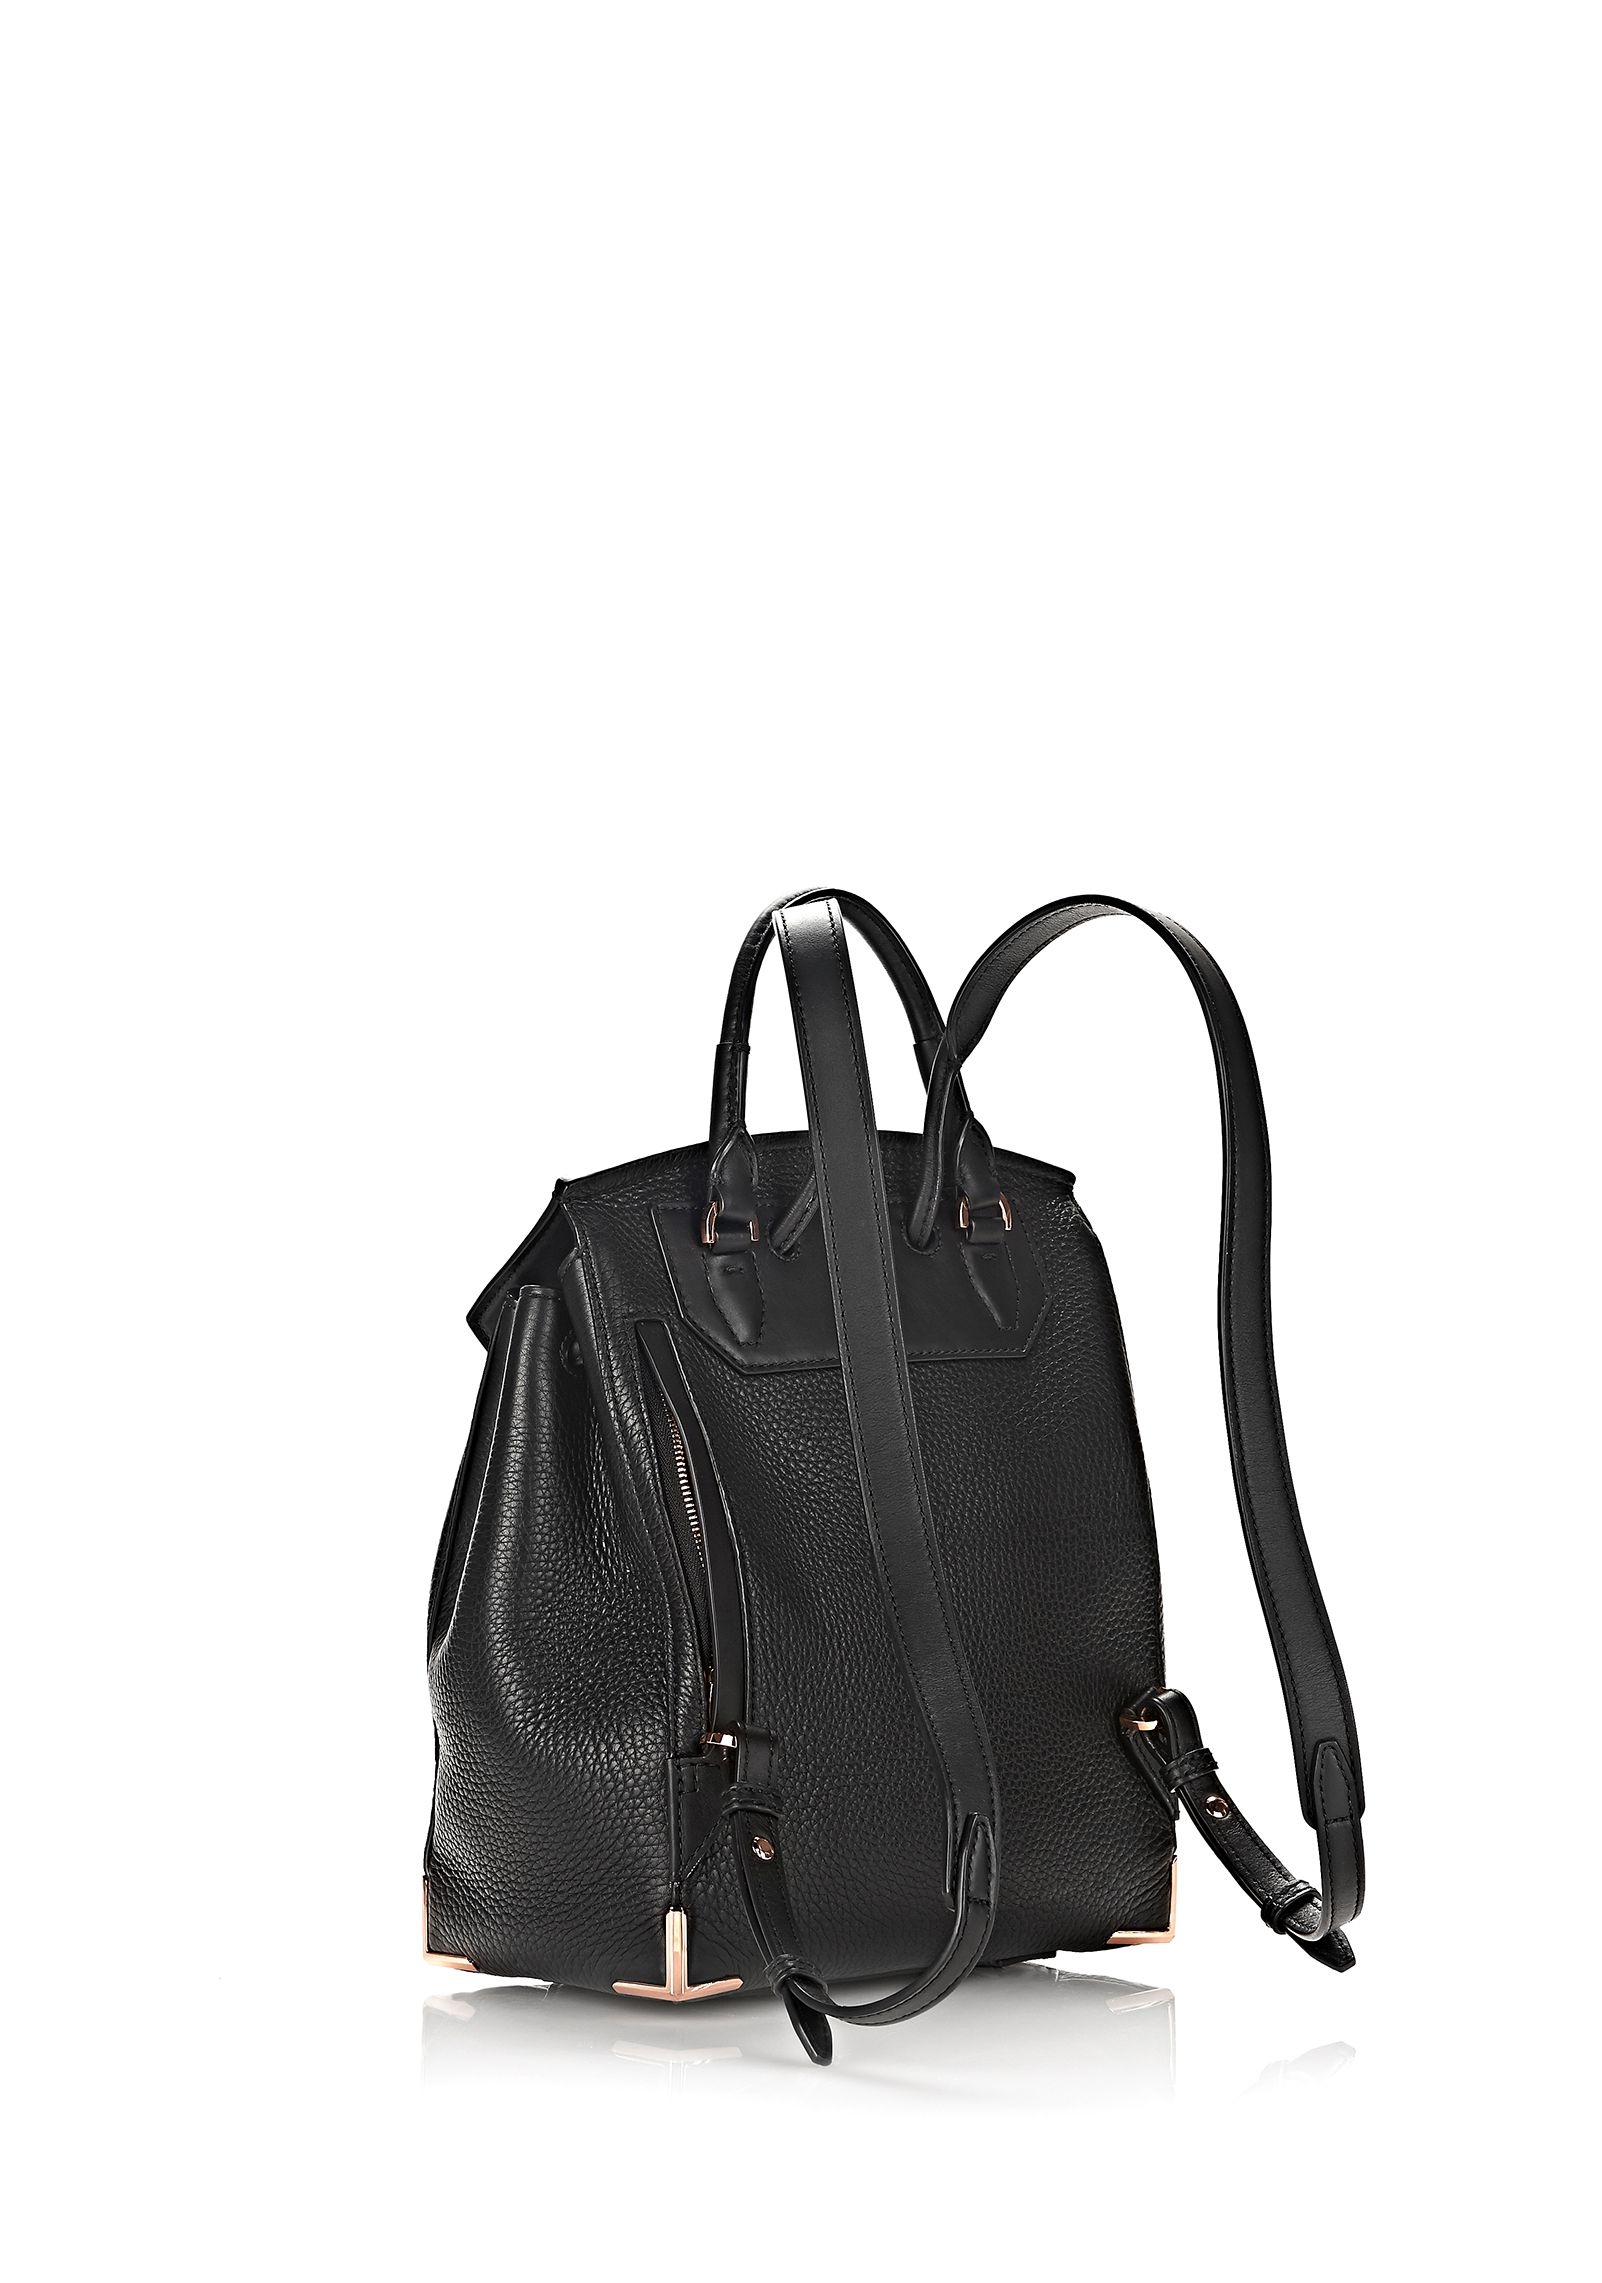 a5c9ee20cb Lyst - Alexander Wang Mini Prisma Leather Backpack in Black